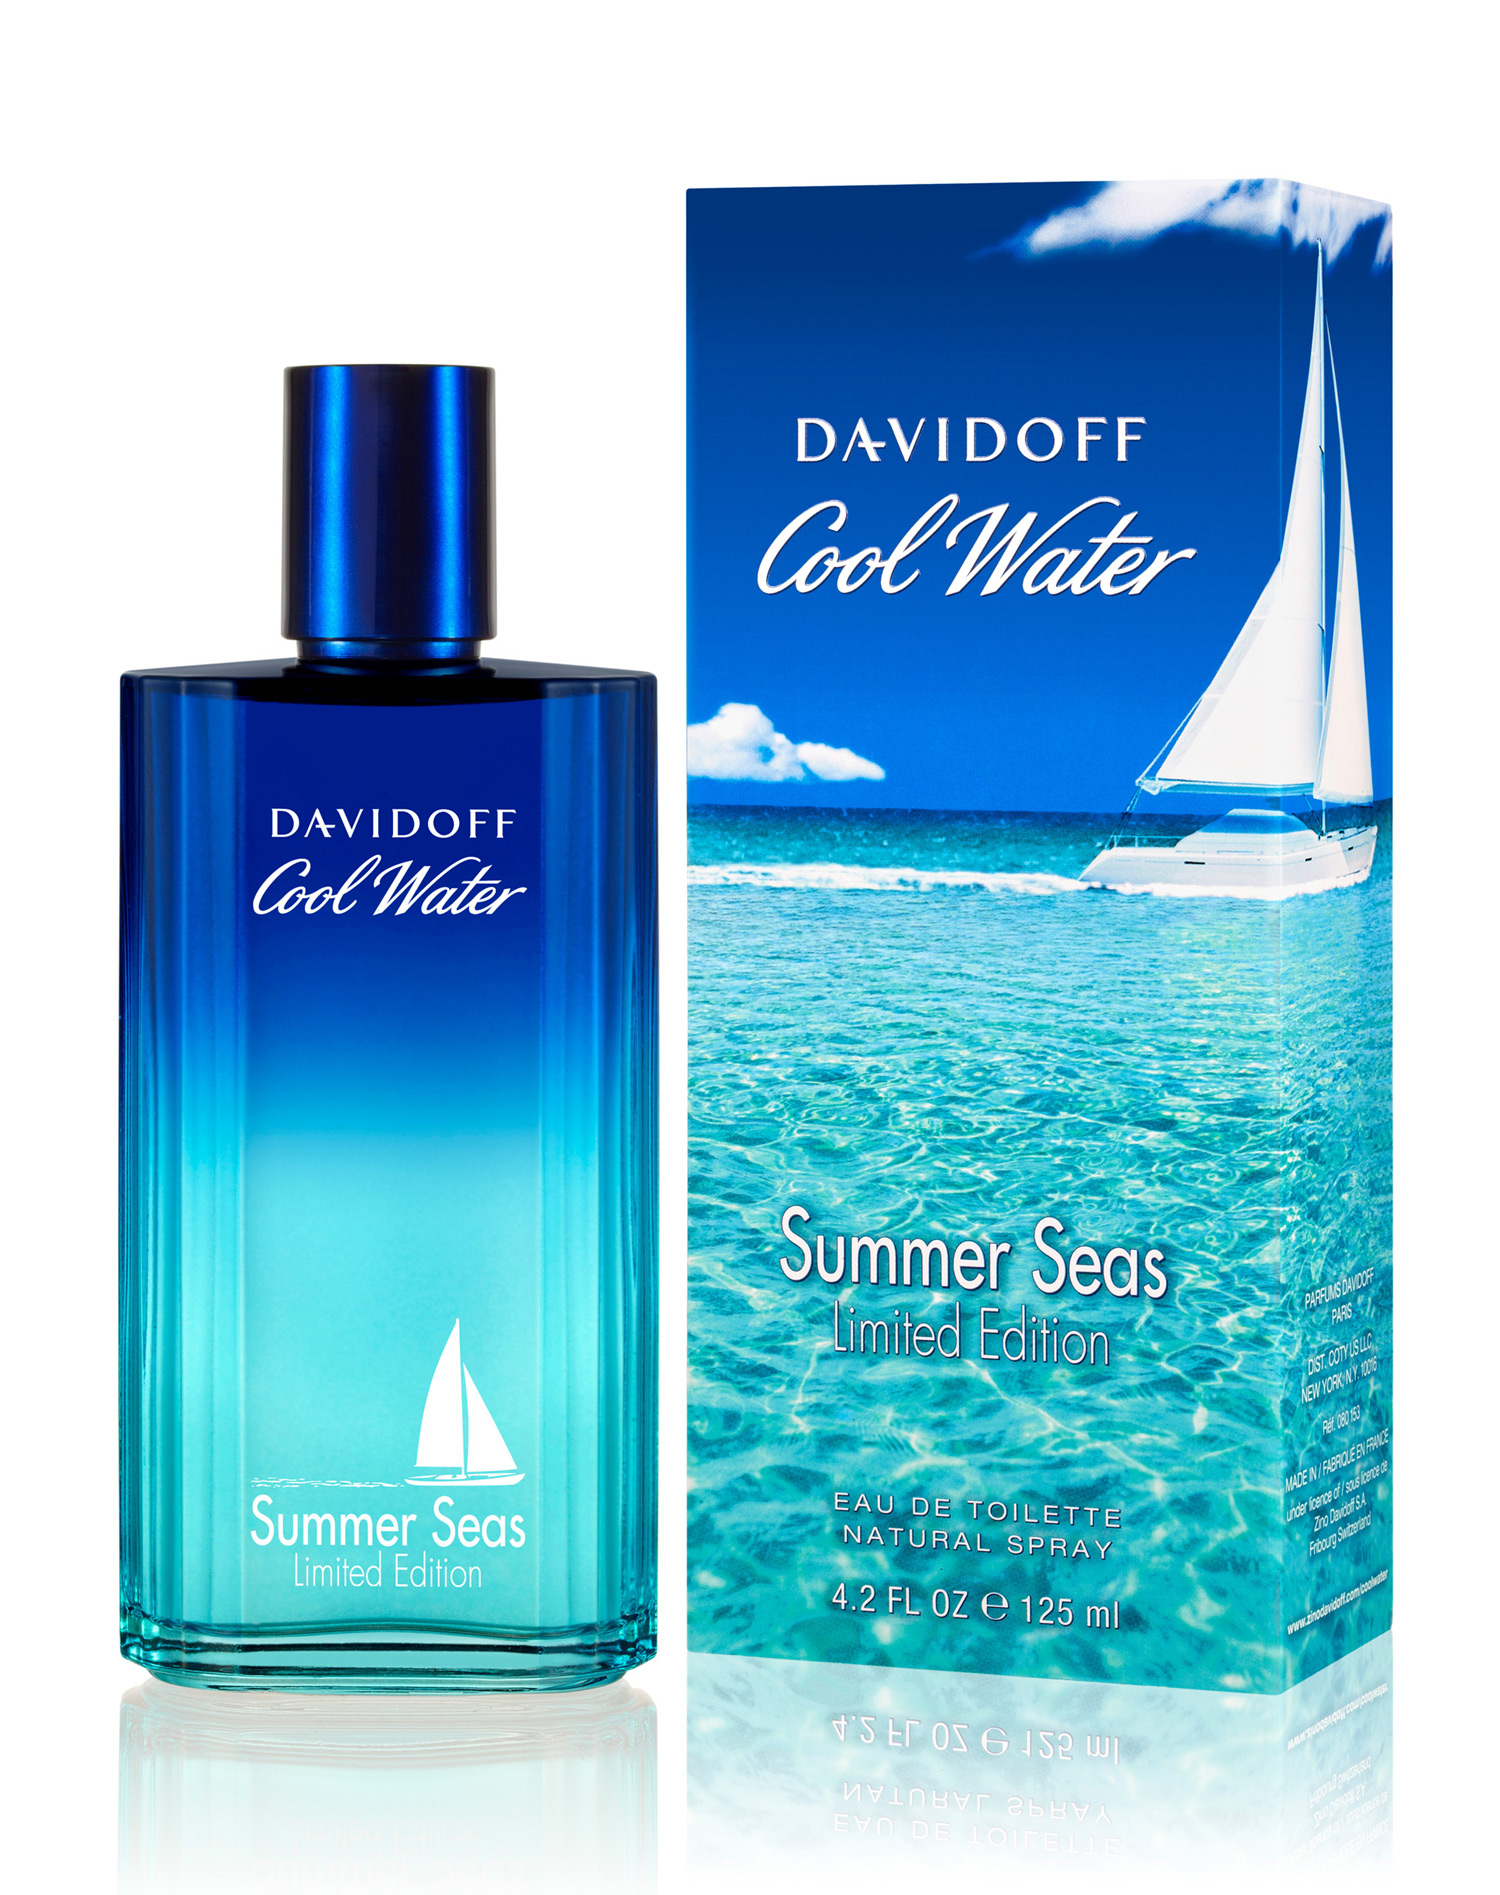 Cool Water Man Summer Seas Davidoff cologne